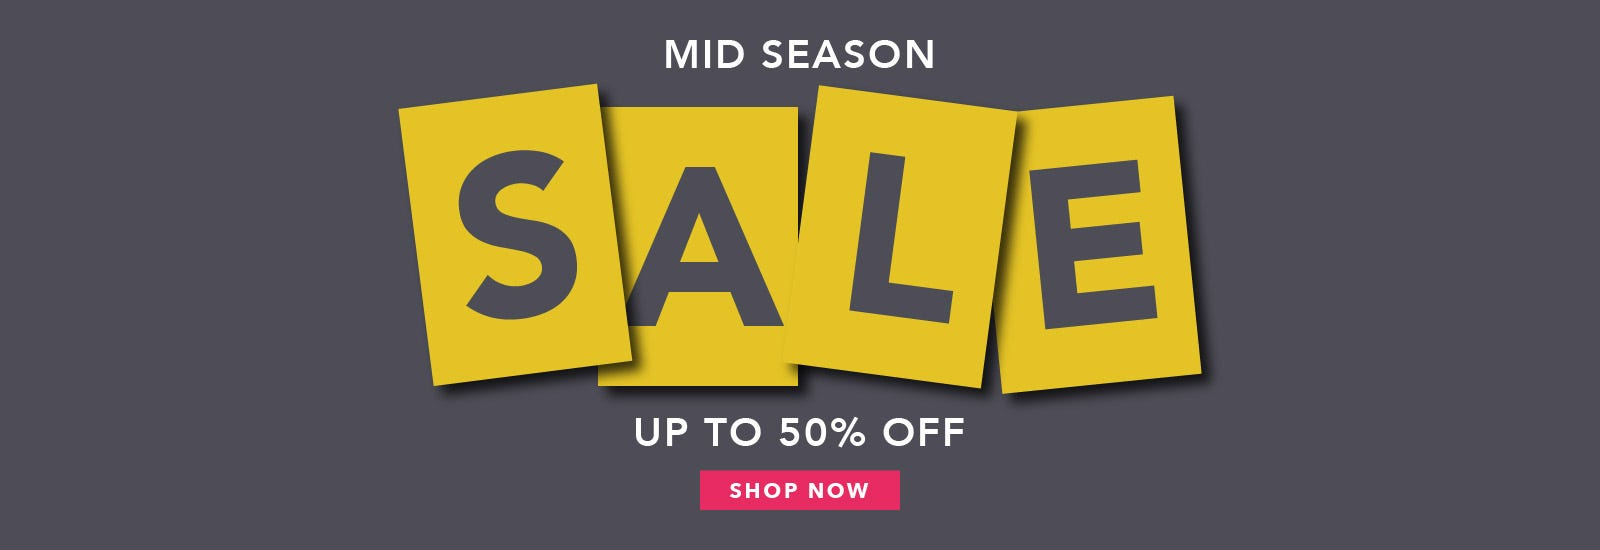 Bedeck Mid Season Sale 2019